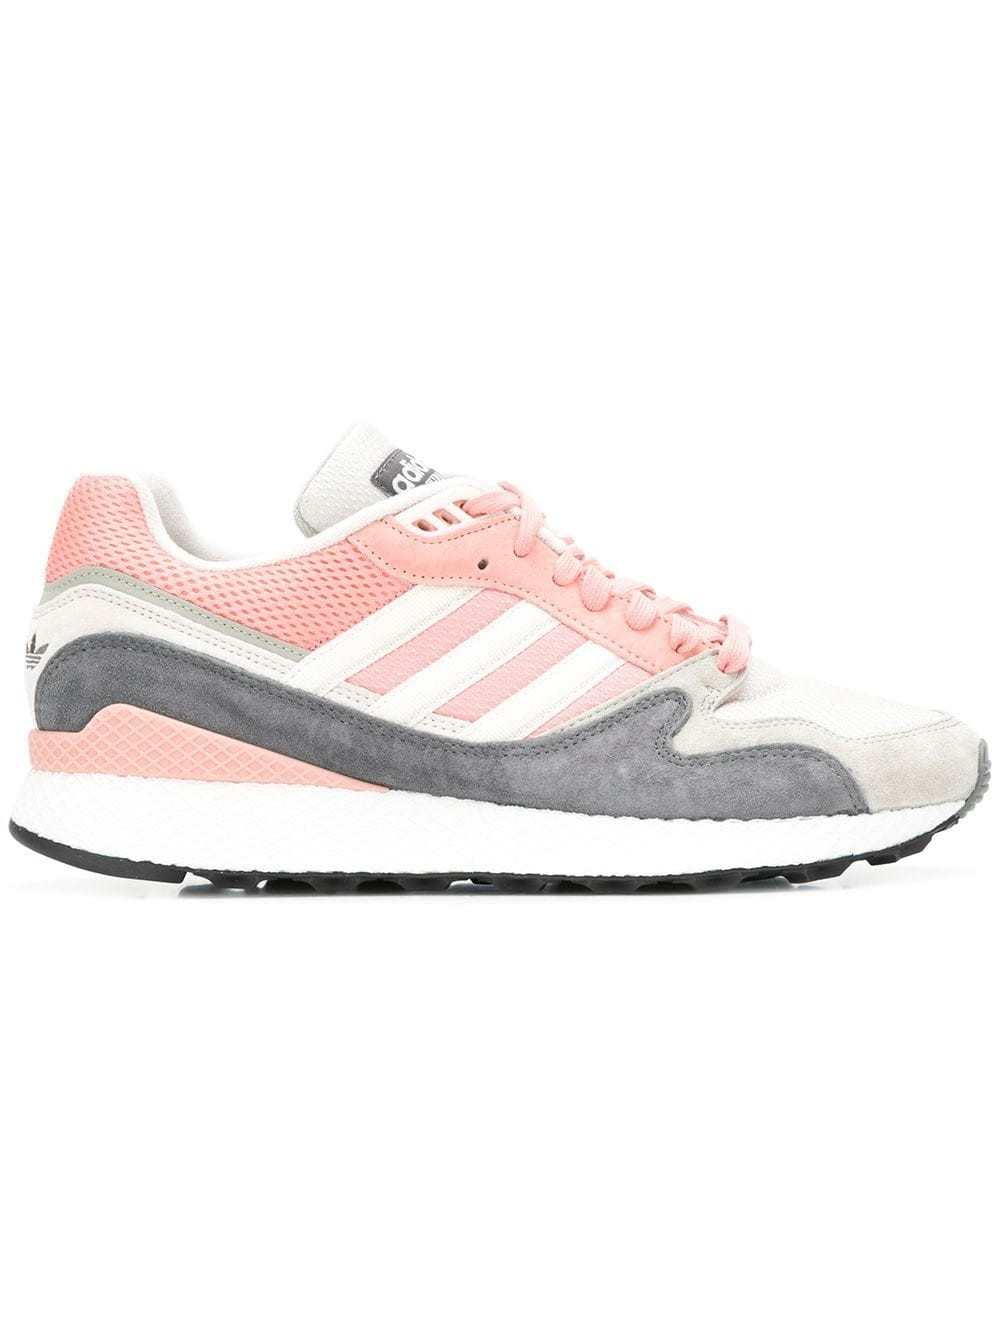 Adidas Originals Ultra Tech Rose/Blanche/Noir B37917